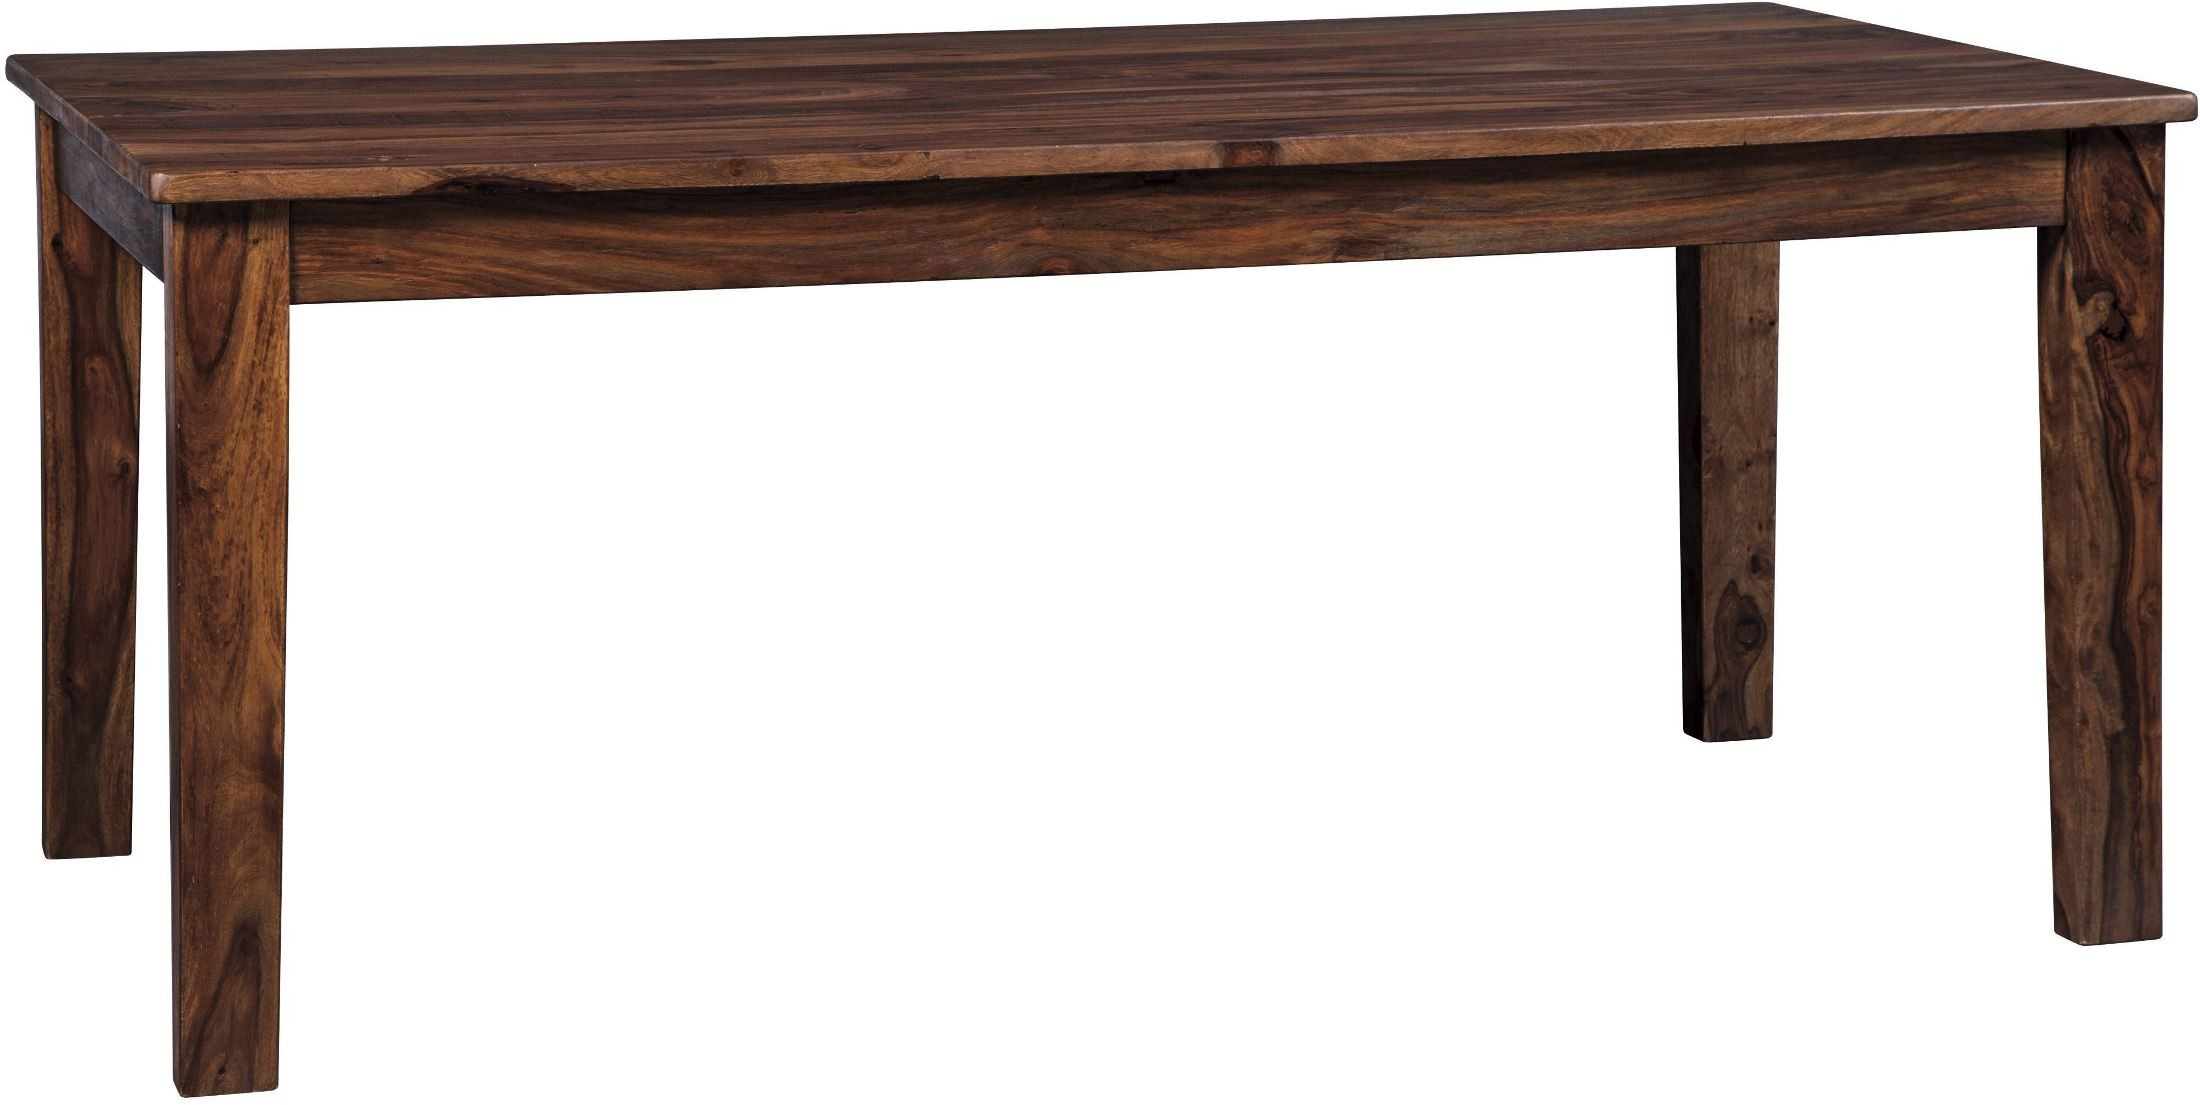 Manishore brown rectangular dining room table from ashley coleman furniture - Rectangular dining table for 6 ...